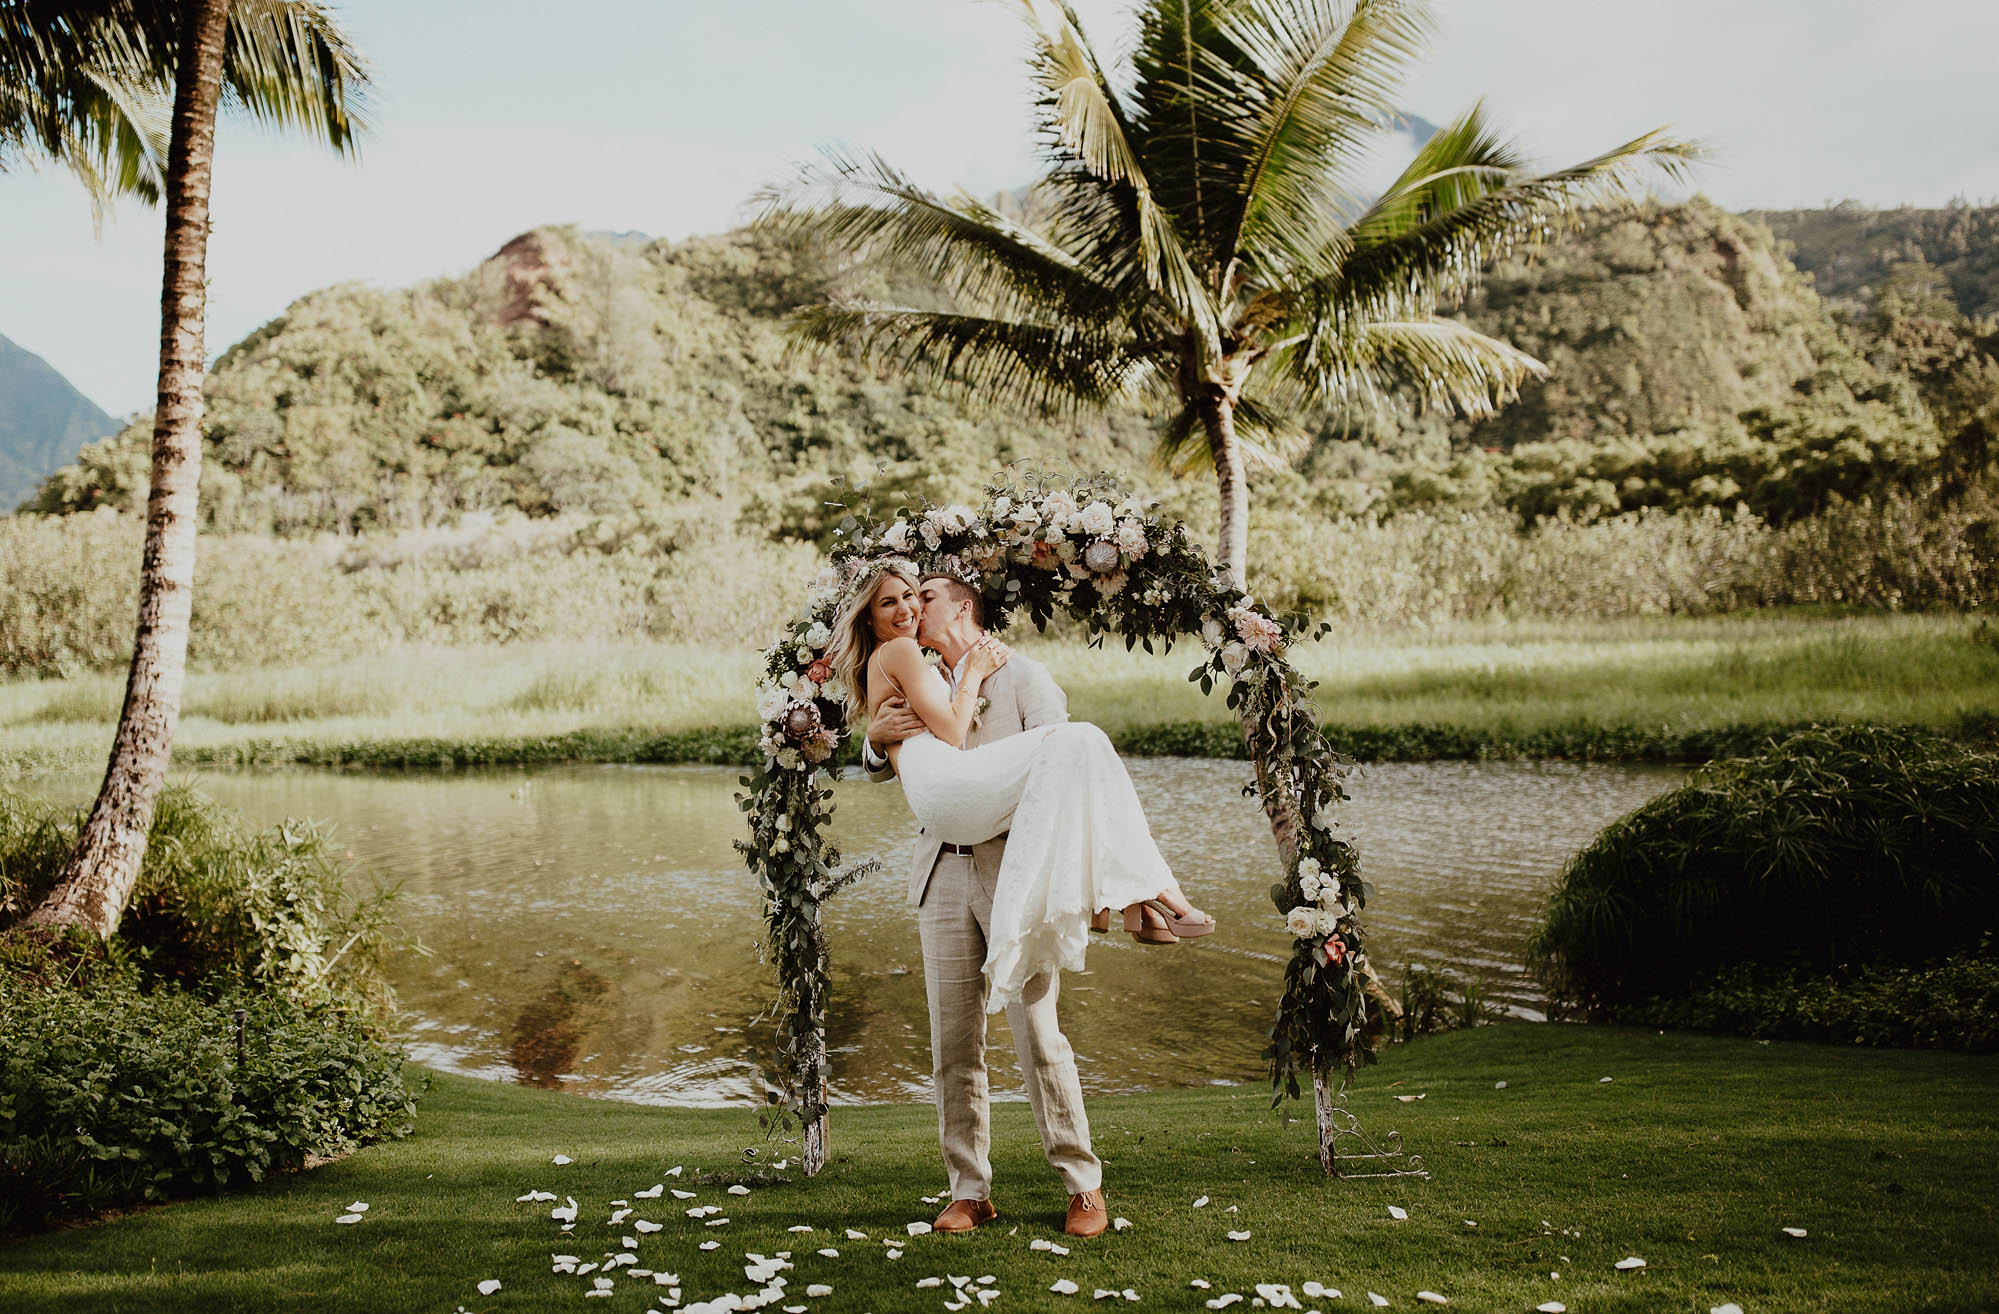 Firemans carry under blush green white arch on our wedding day north shore kauai hawaii